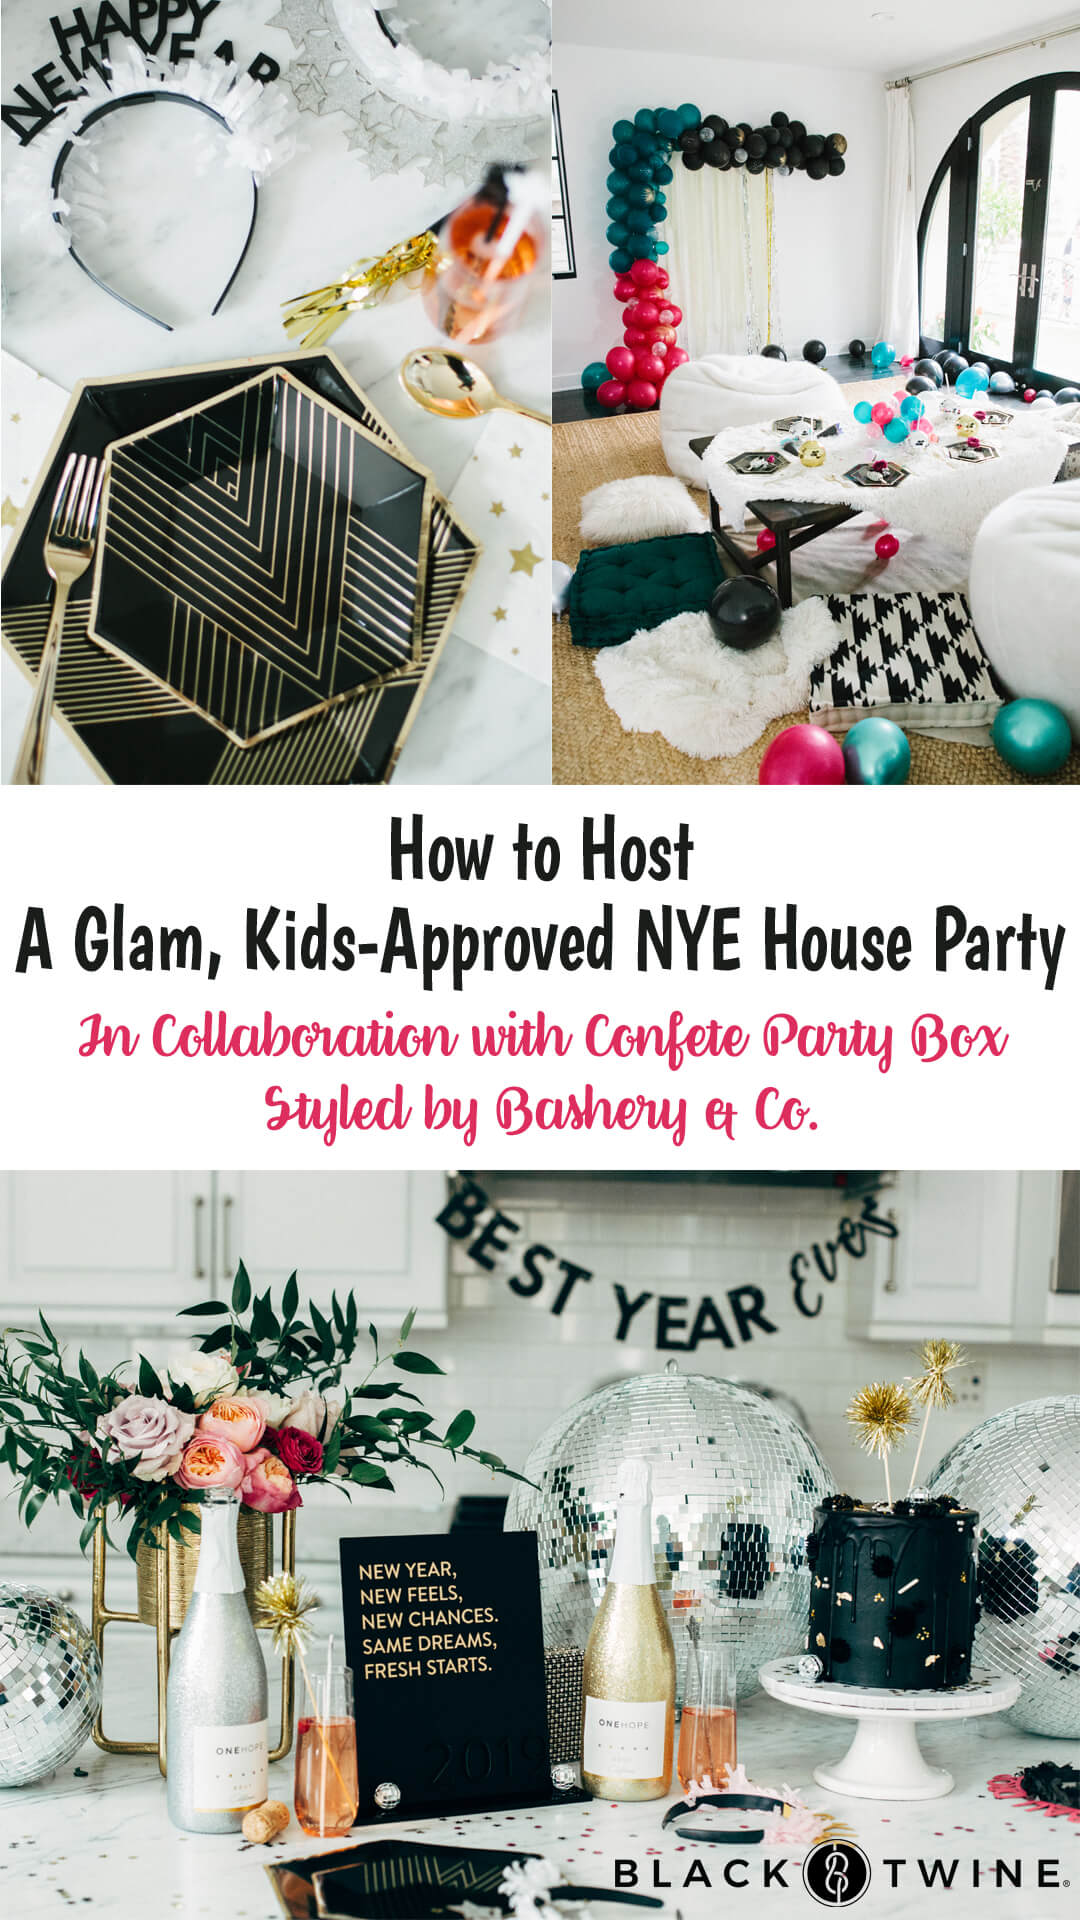 Place Setting and Tablescape from Glam, Kids-Approved NYE House Party In Collaboration with Confete Party Box, Styled by Bashery & Co. | Black Twine